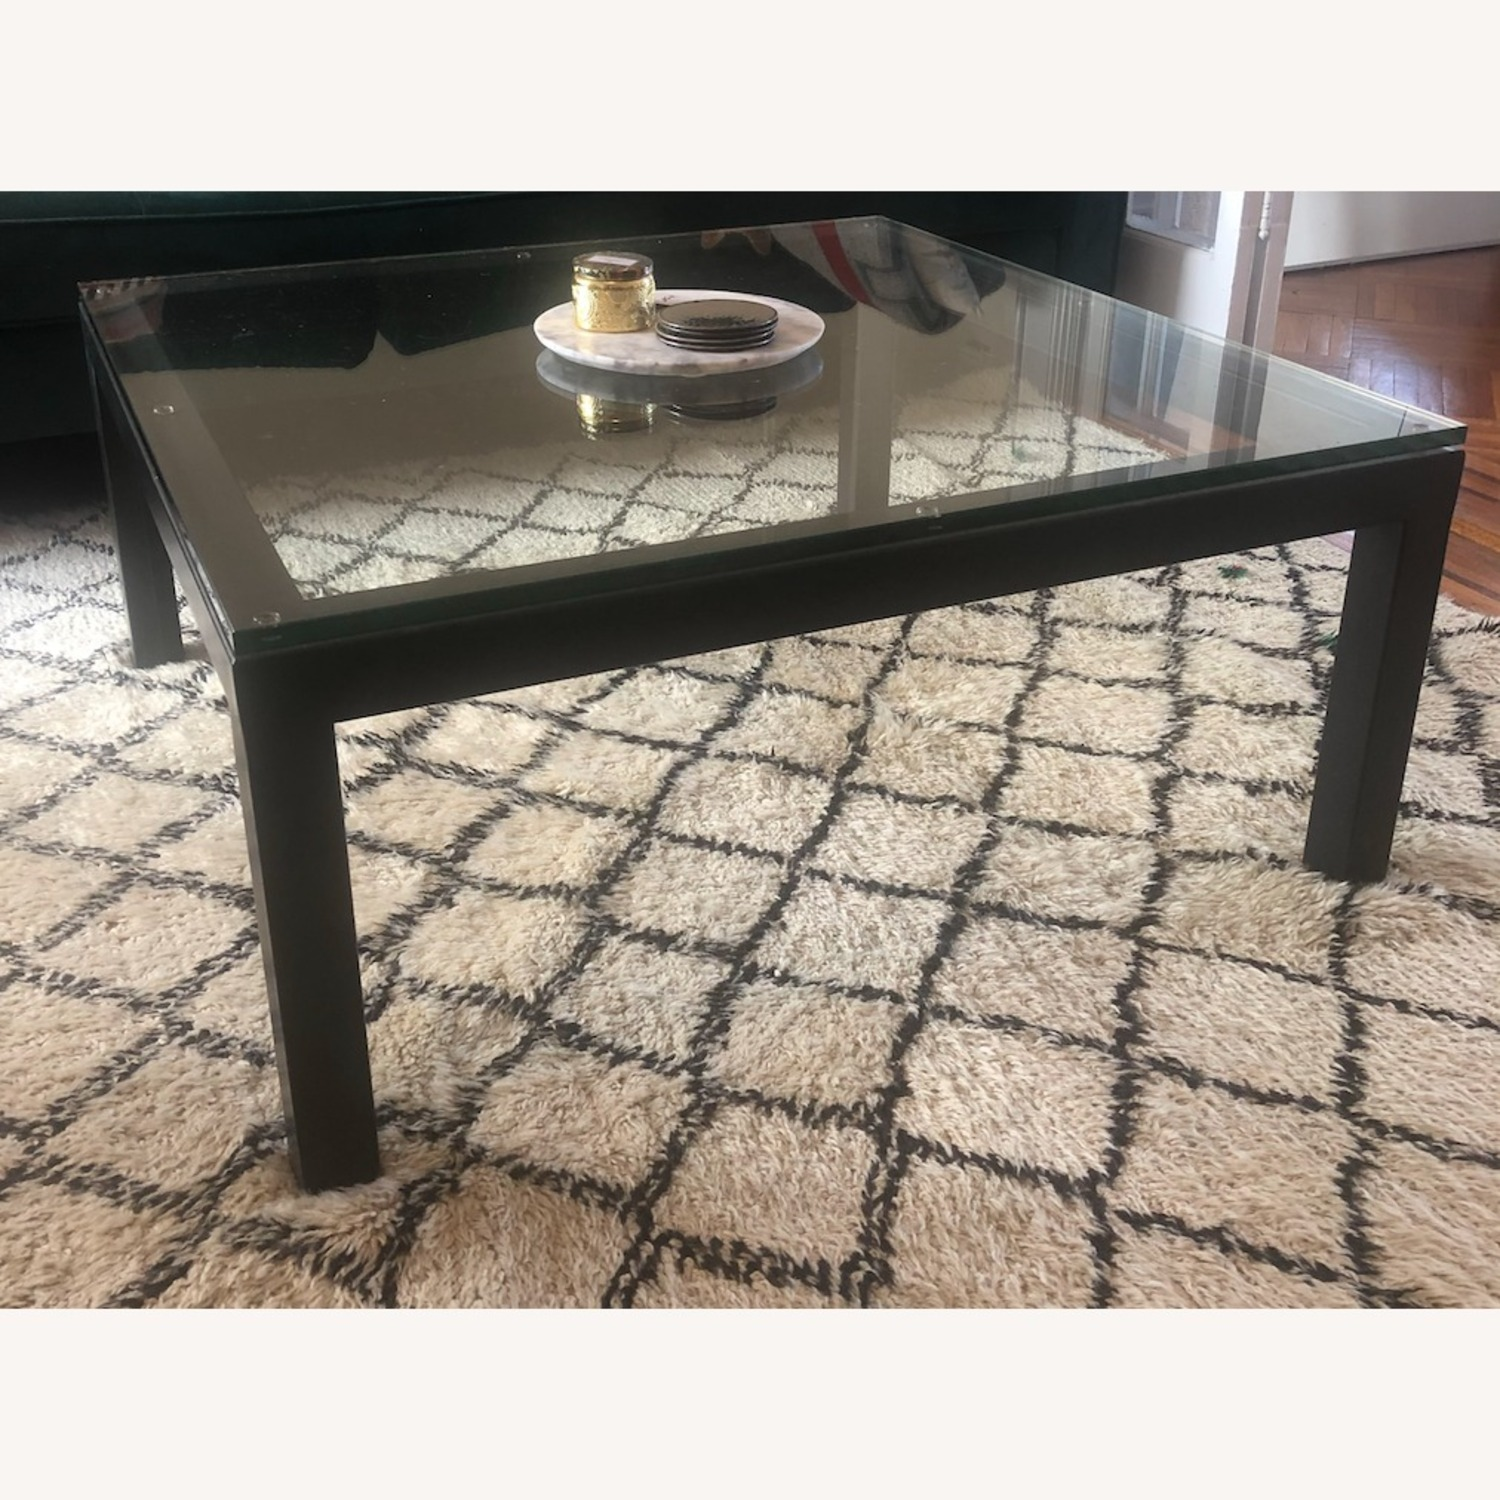 Crate & Barrel Sturdy & Elegant Glass Coffee Table - image-1